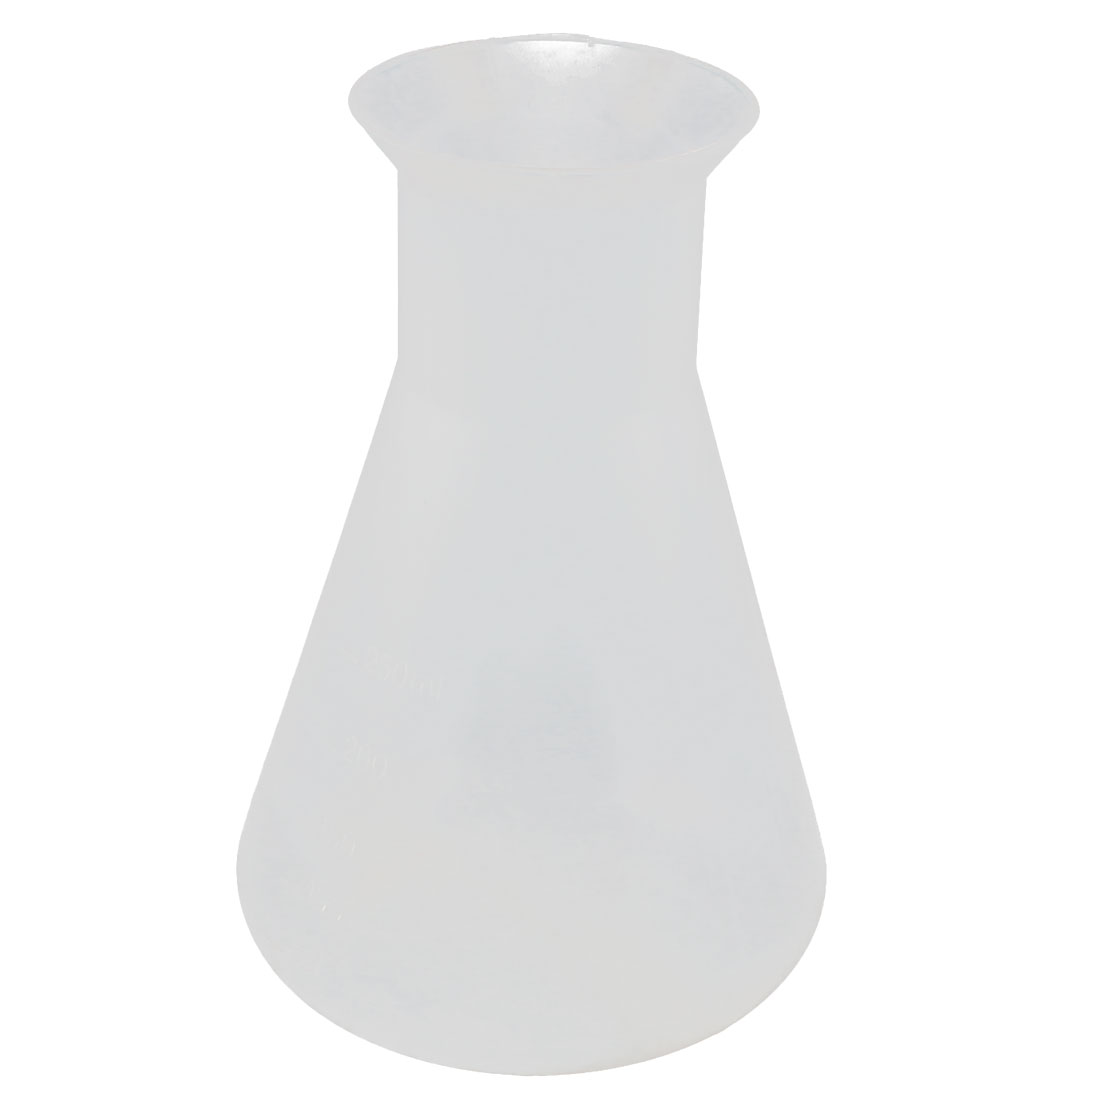 250ML Chemistry Course Plastic Narrow Mouth Solution Measuring Erlenmeyer Flask